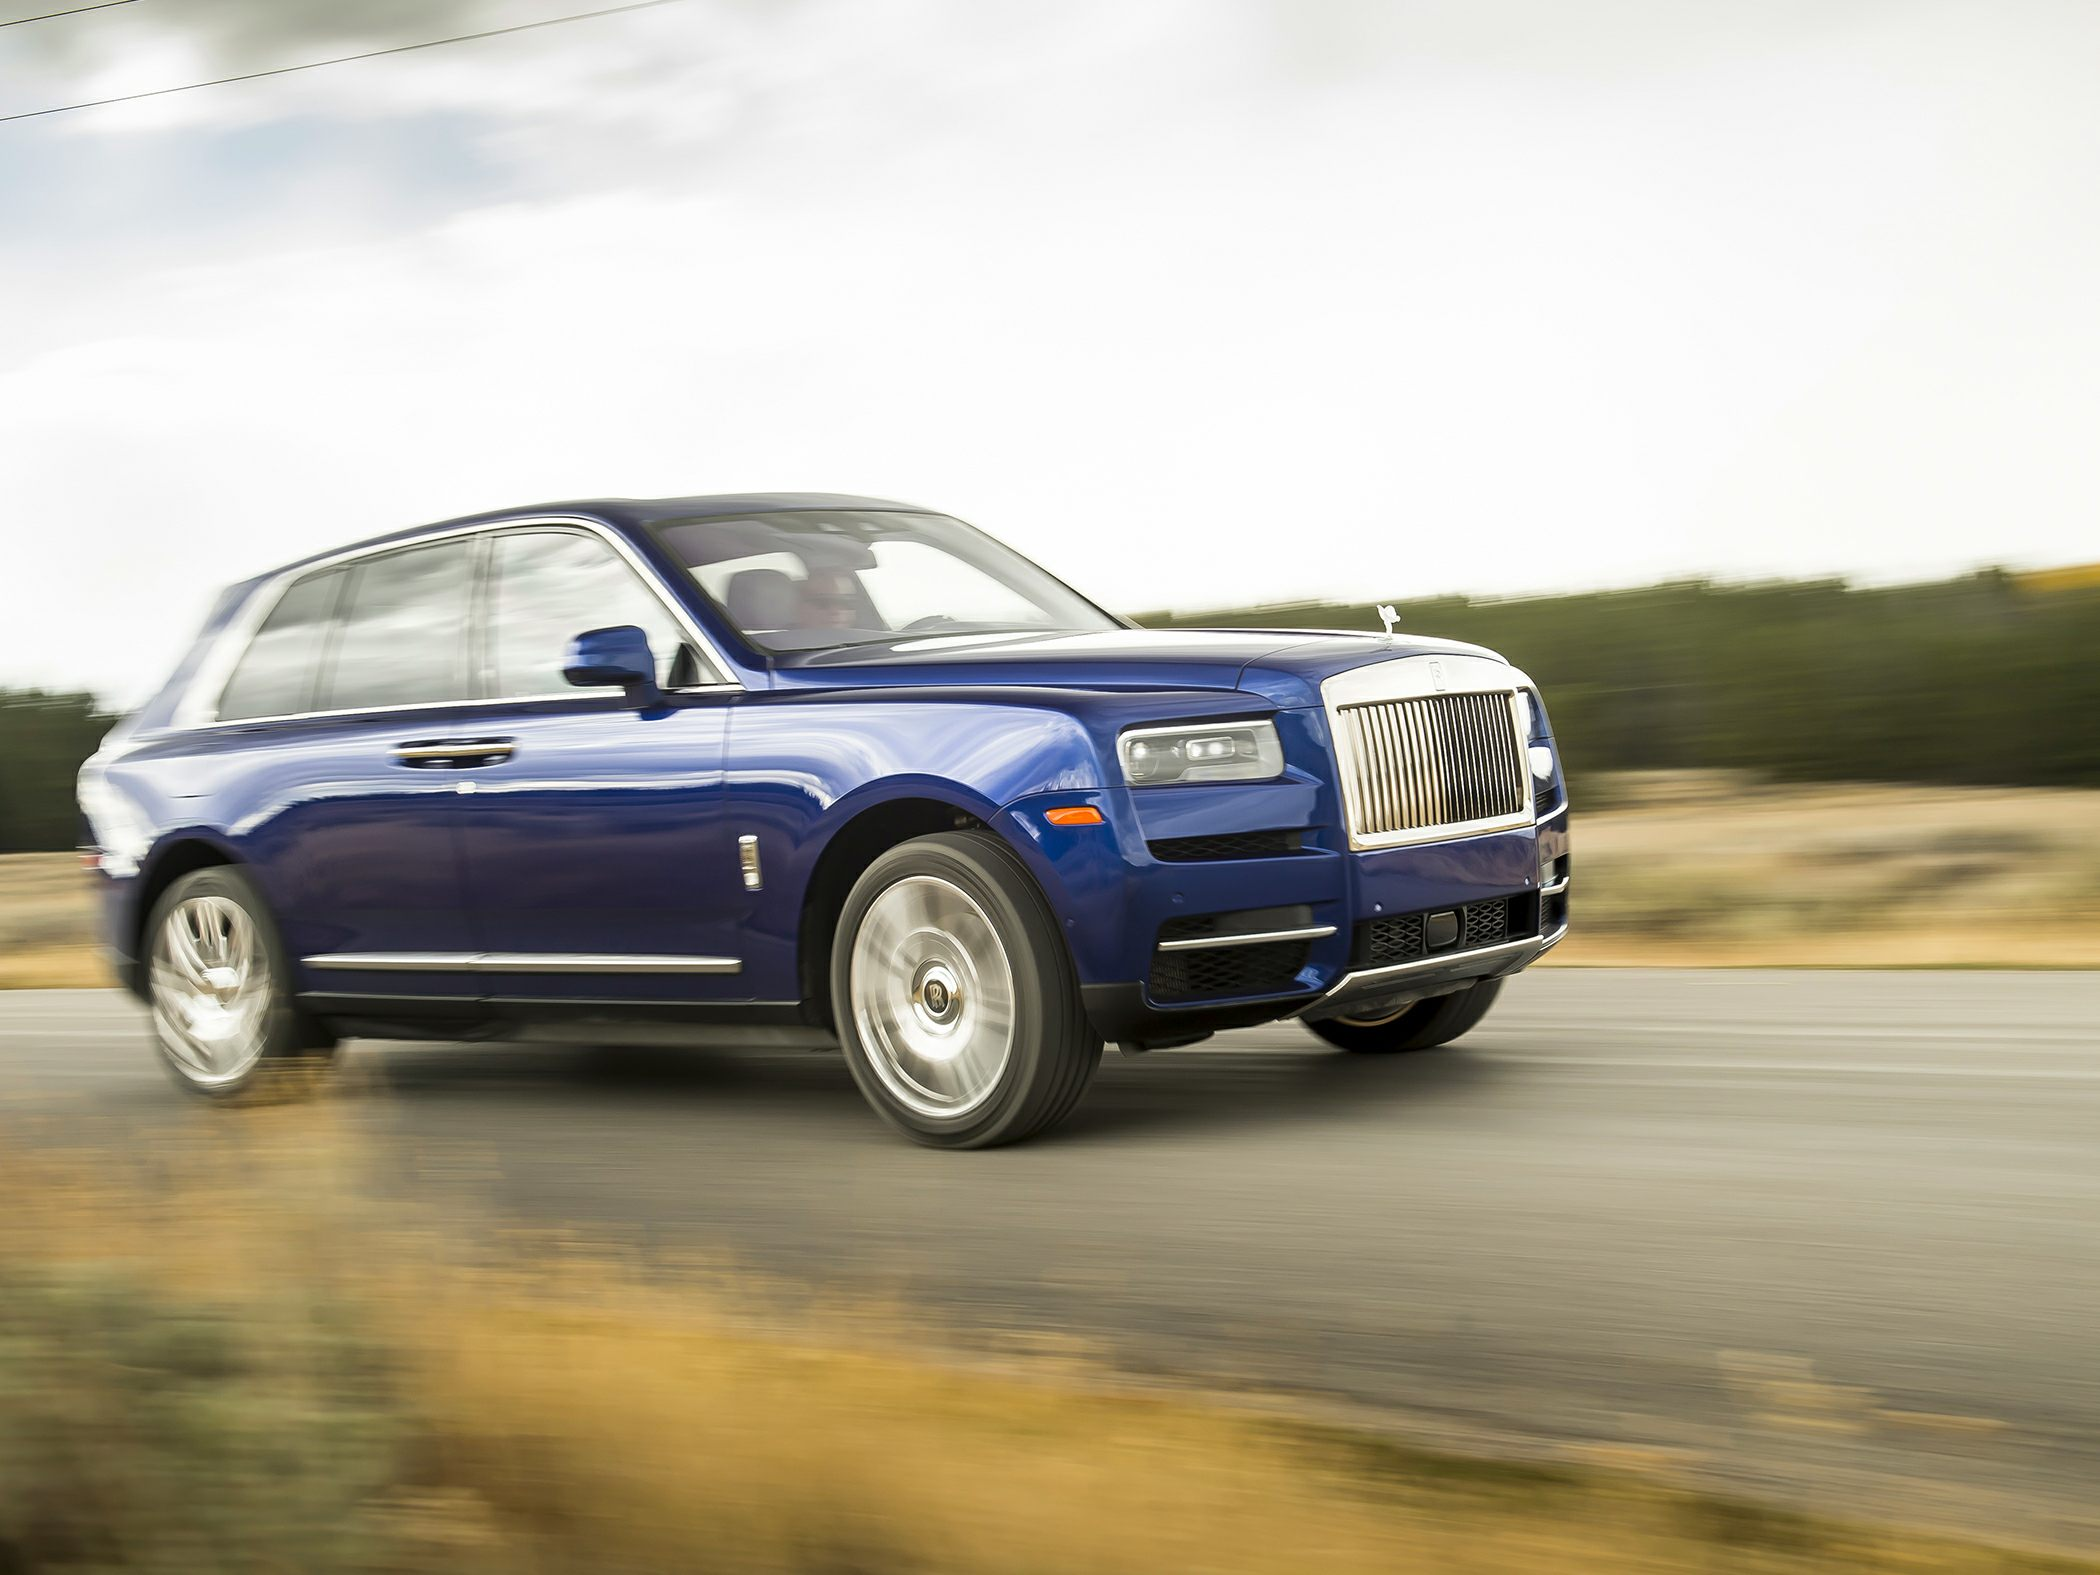 2020 Rolls Royce Cullinan Base Sport Utility Pricing And Options